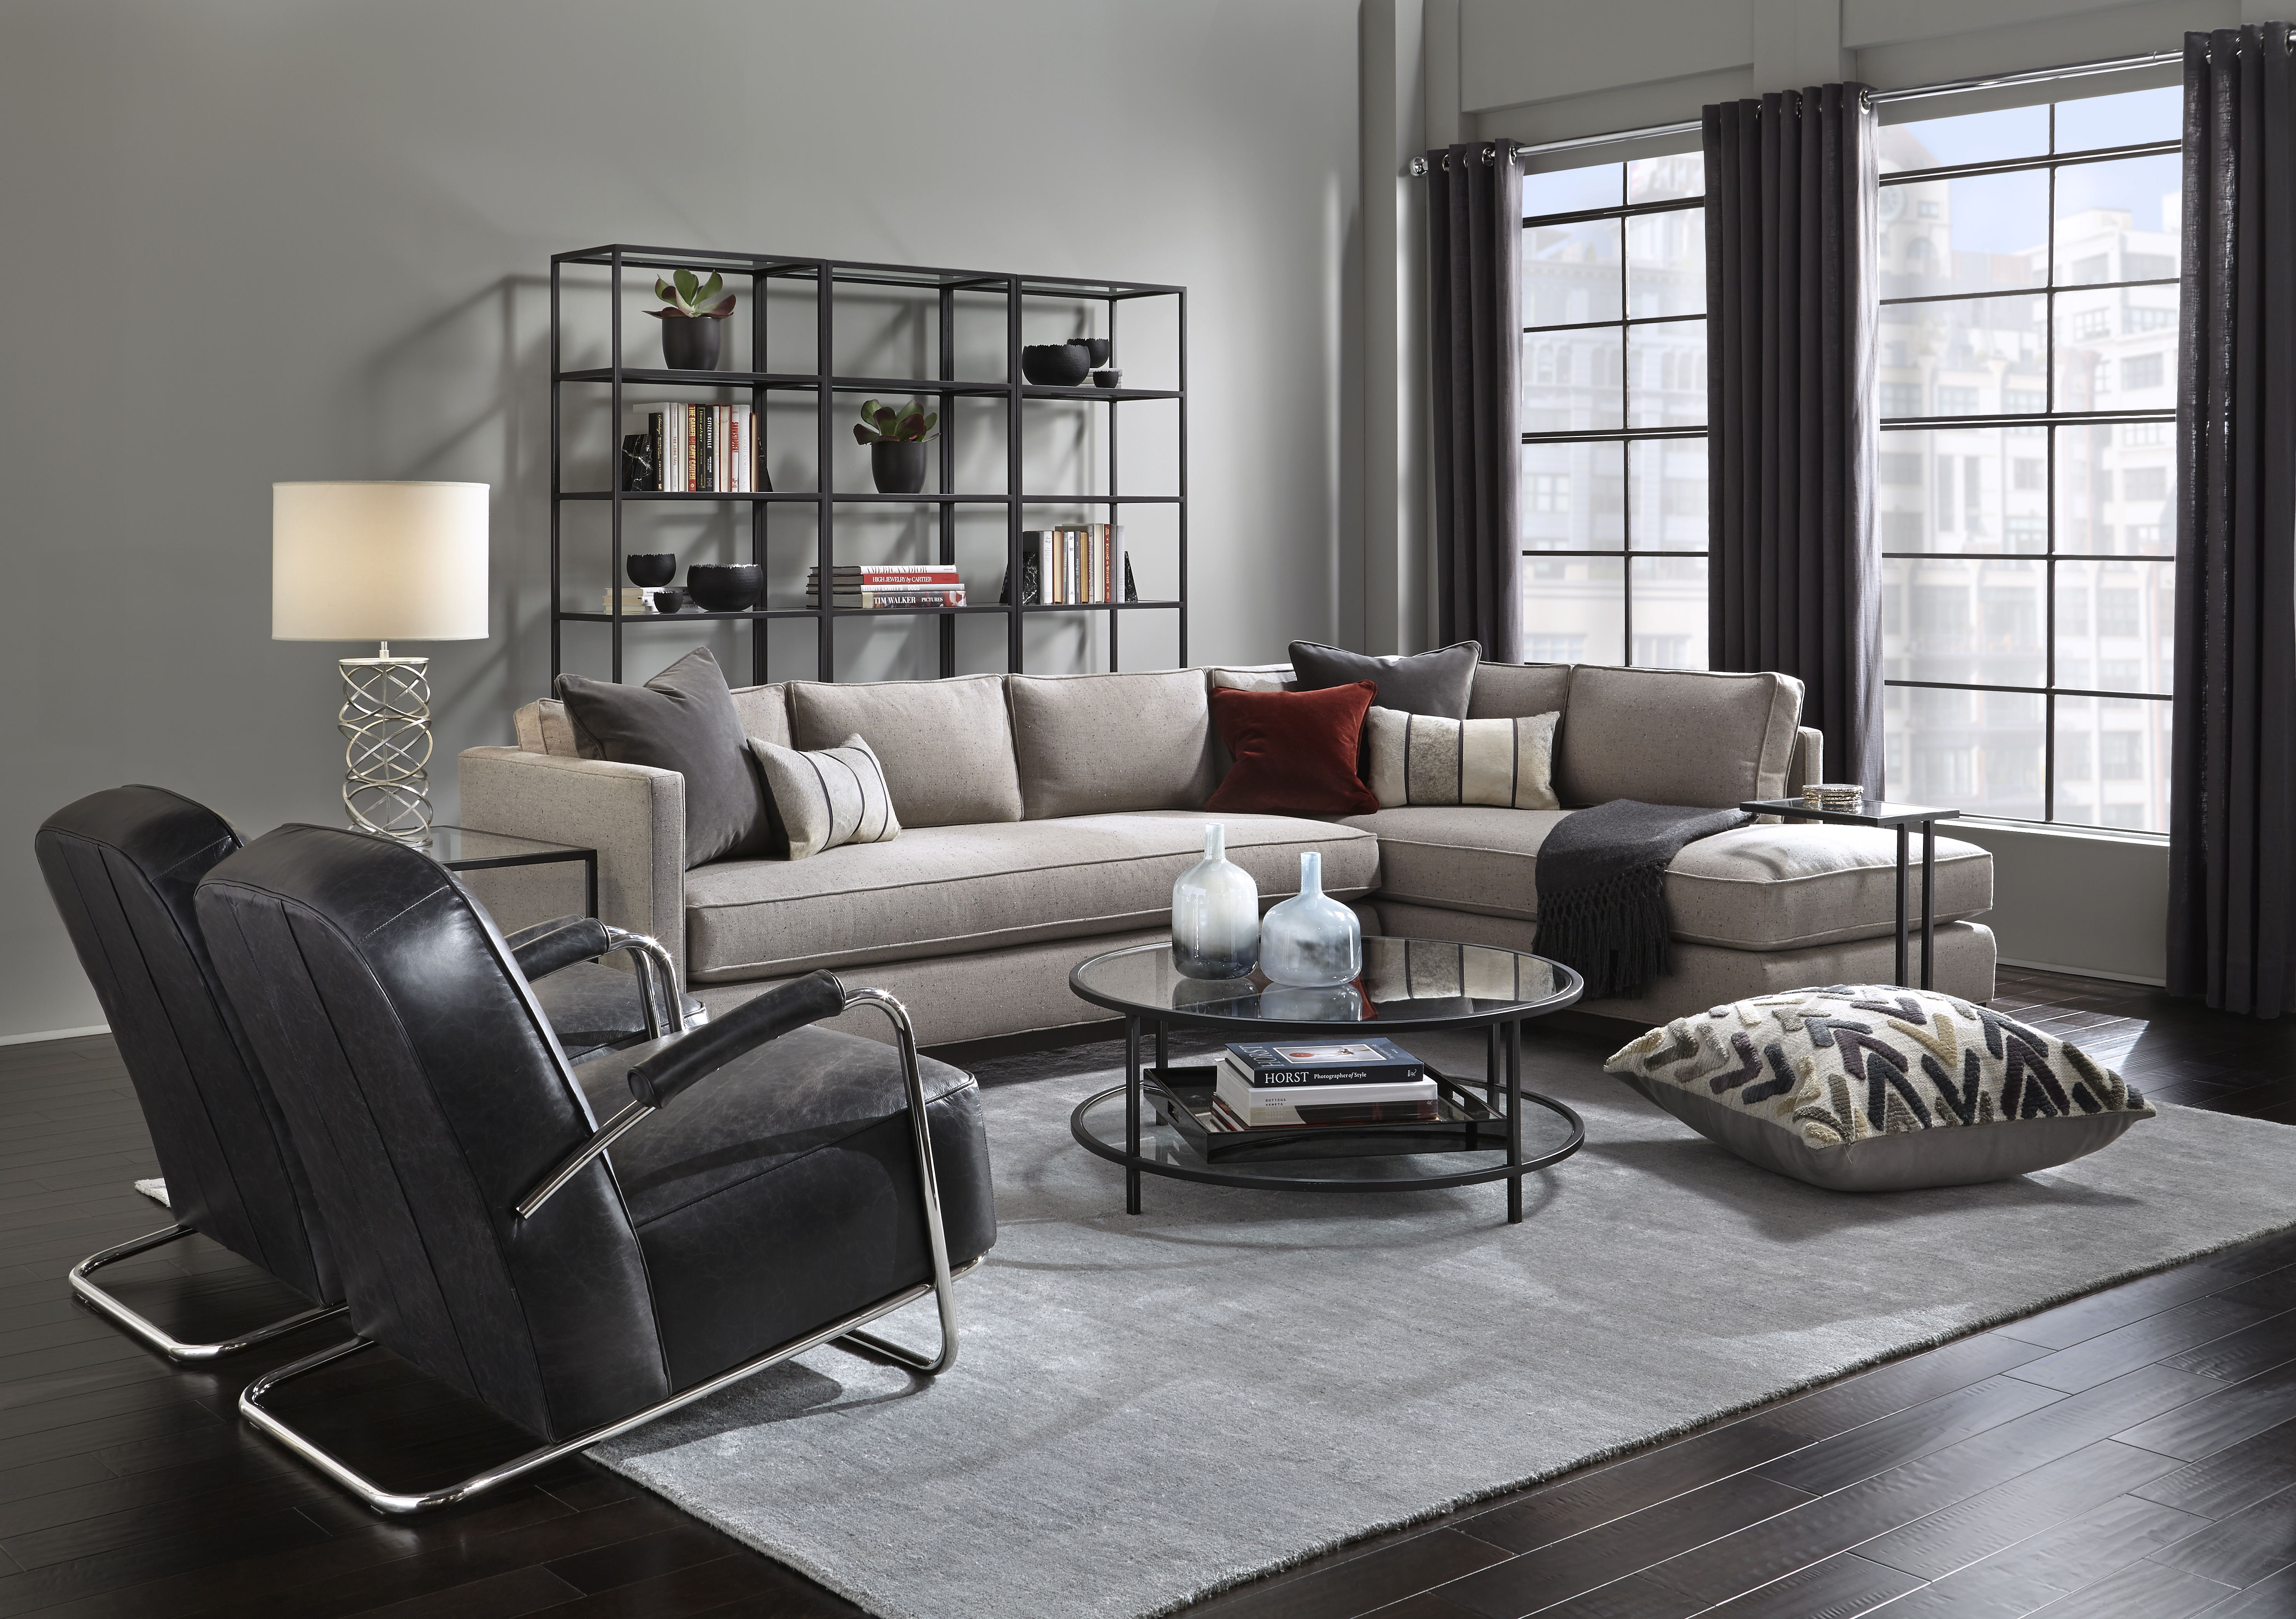 most expensive leather sofas in the world children s flip out sofa australia 12 designer picked for every budget and people with pets kids